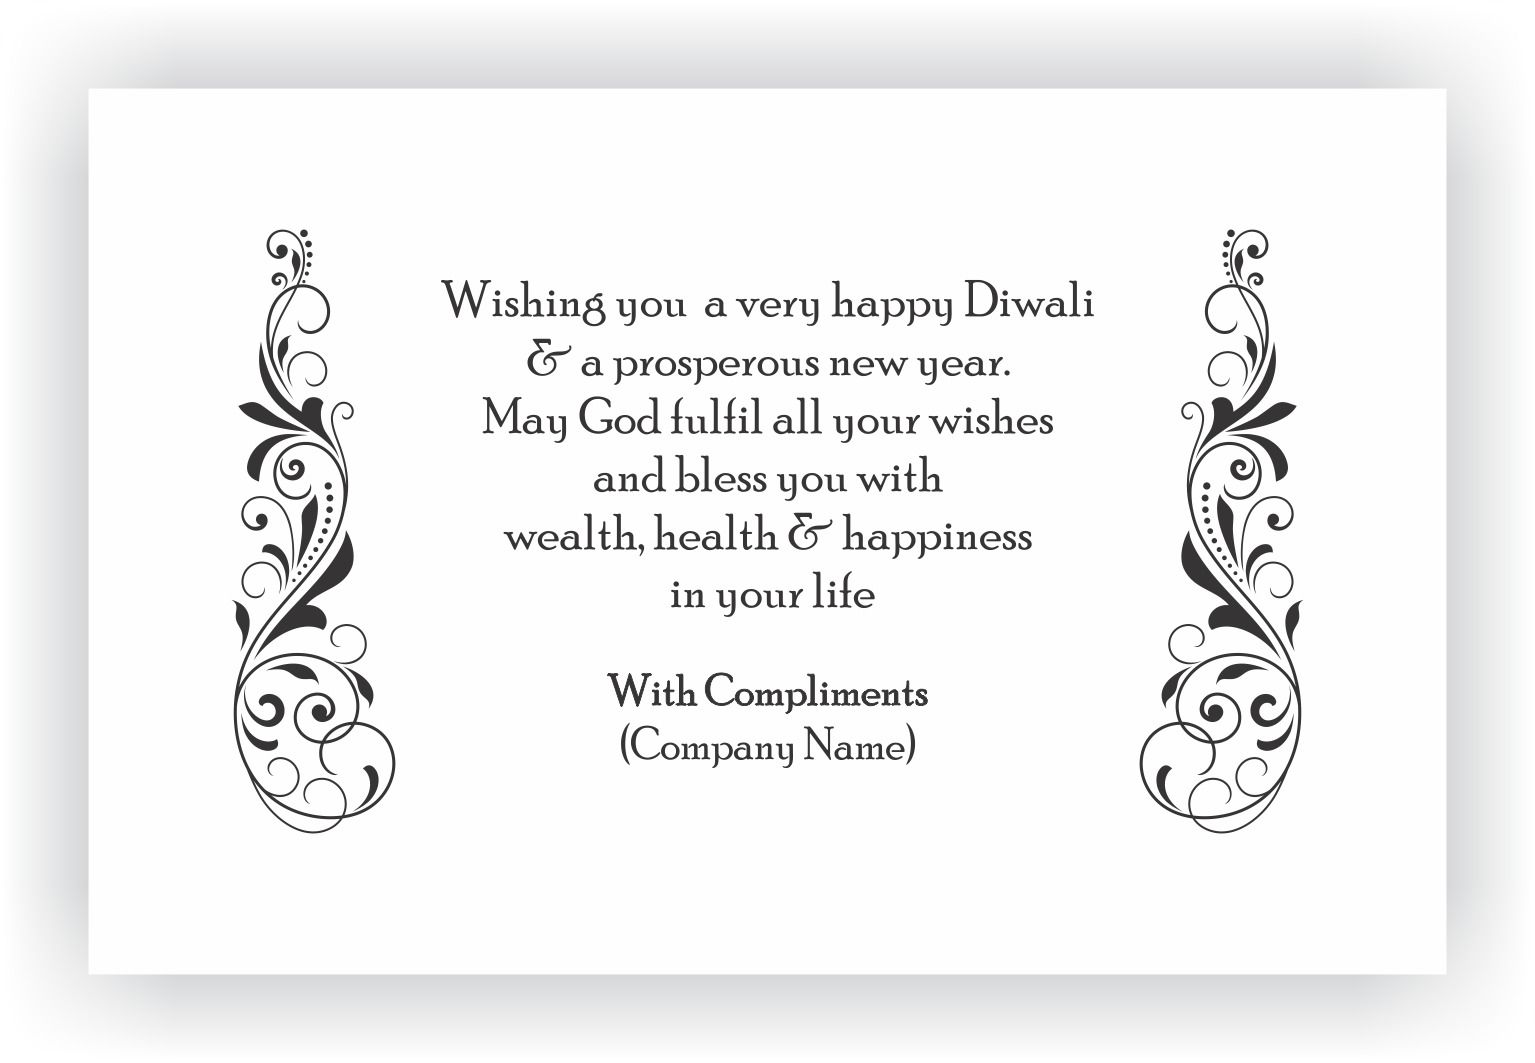 Messages for your client employees corporate diwali gifts diwali gifts messages stopboris Choice Image